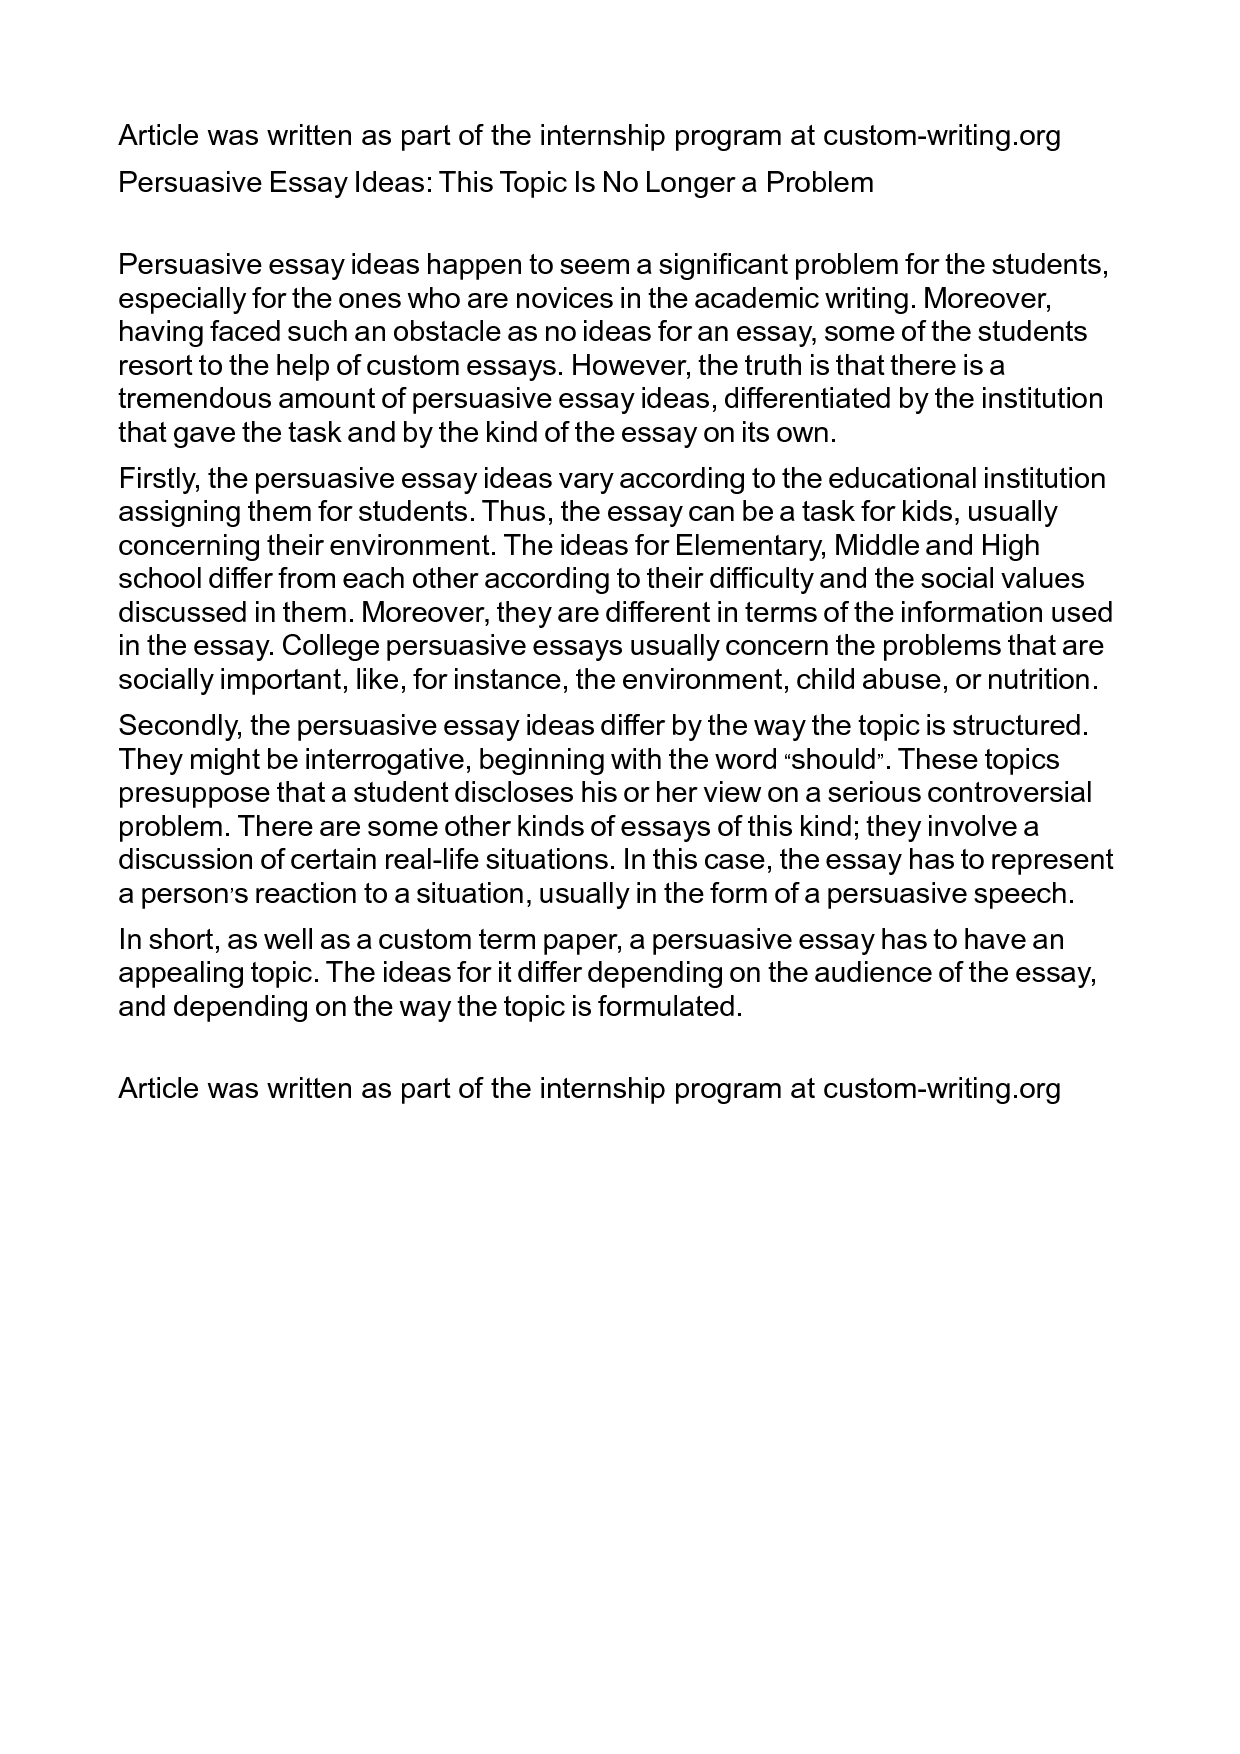 018 Essay Example Middle School Topics Persuasive 480361 Archaicawful Prompts Argumentative Funny For Full